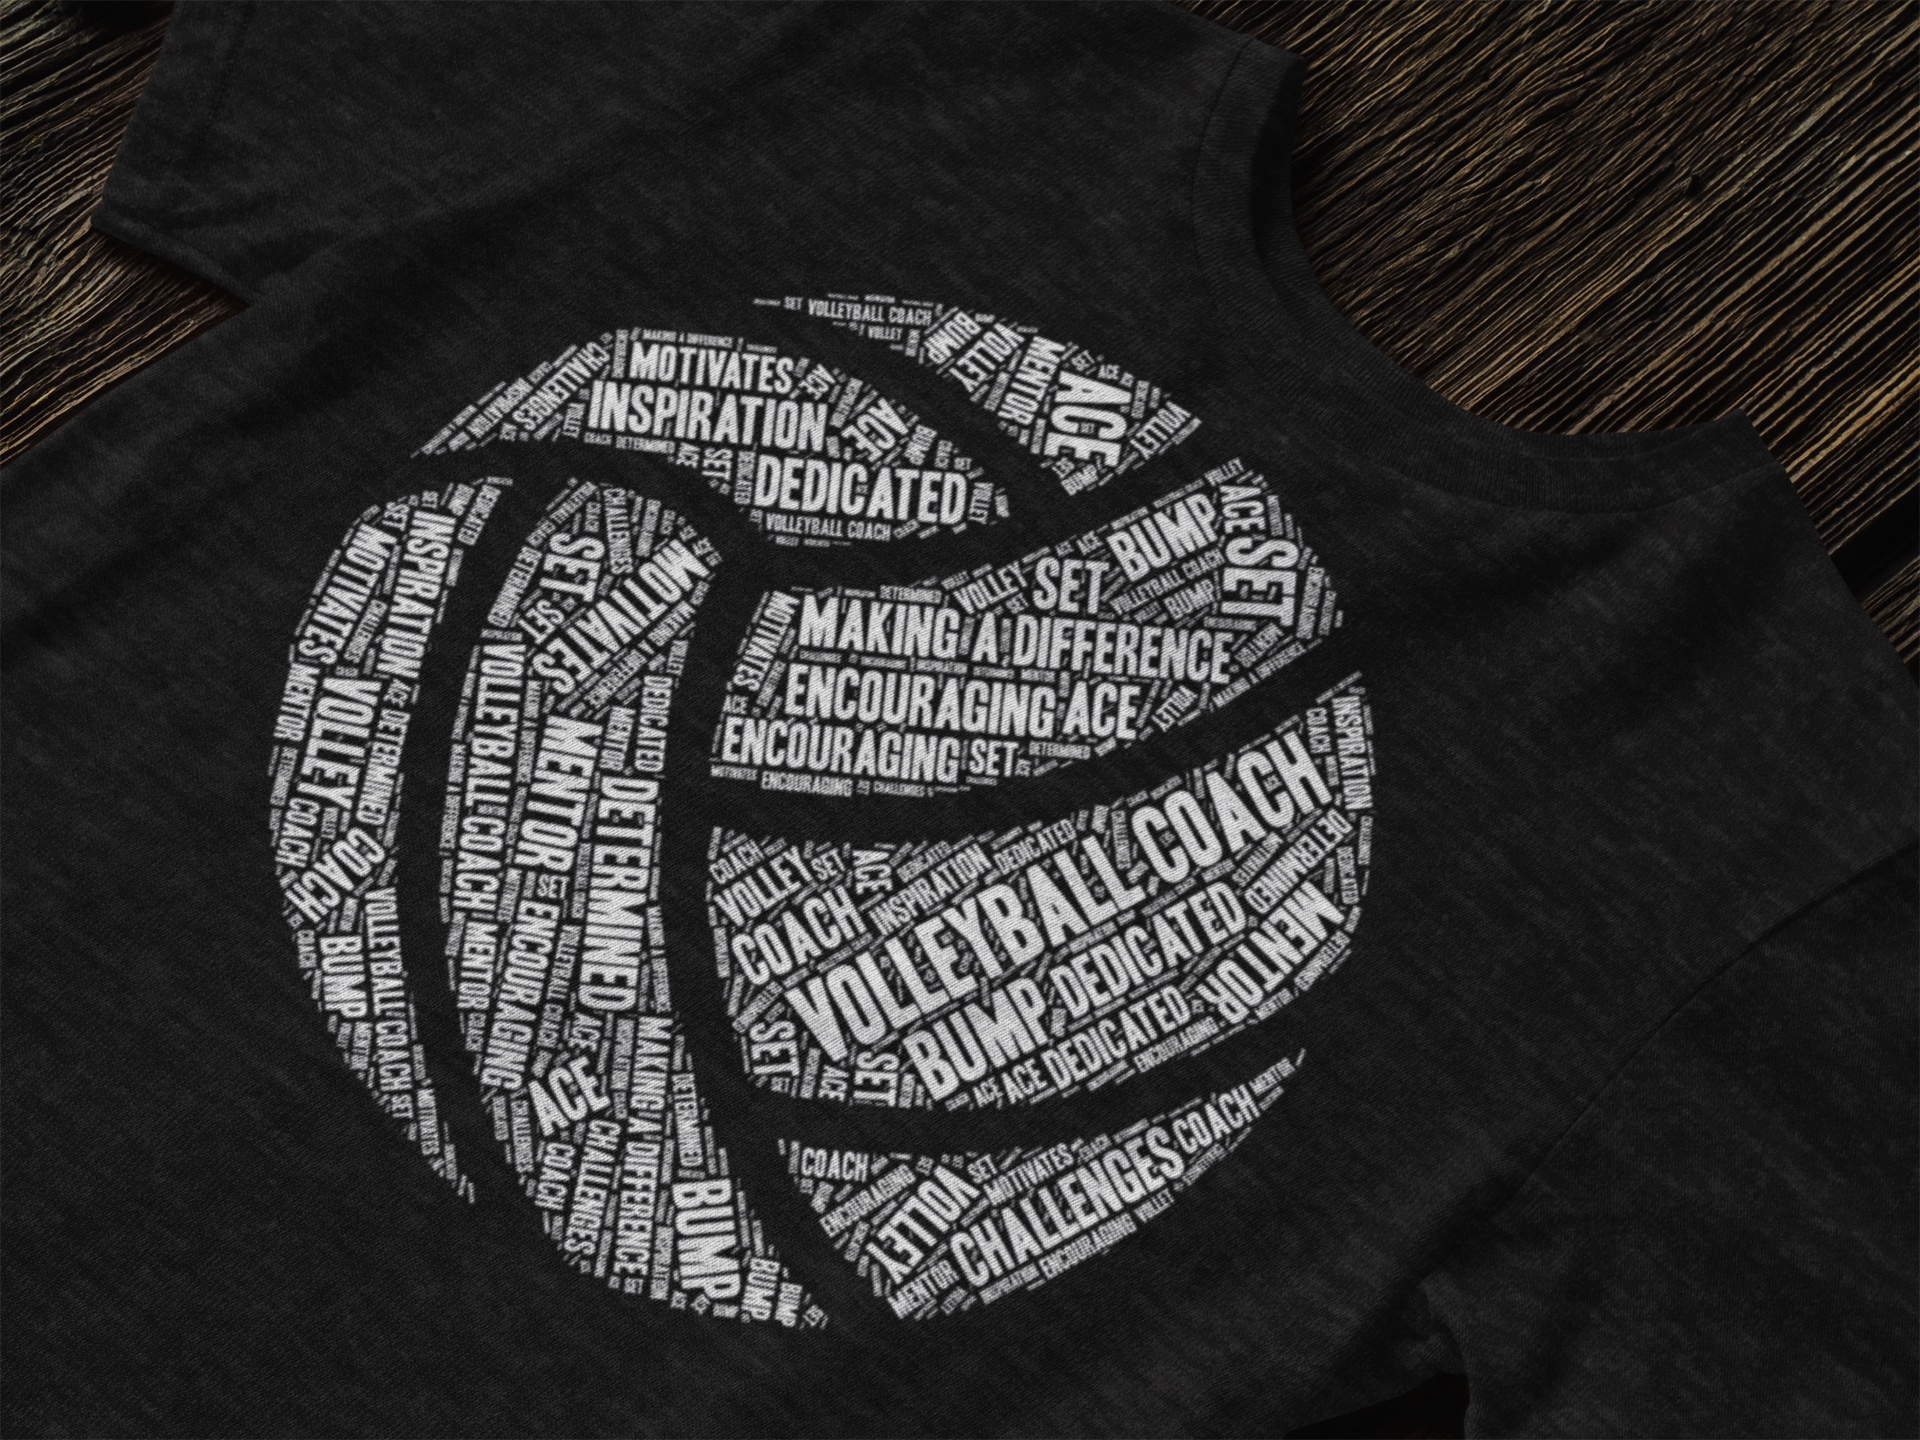 Volleyball Coach Appreciation Shirt Word Collage In Shape Of A Volleyball Makes A Great Thank You Gift Appreciation Shirt Coaching Volleyball Shirts